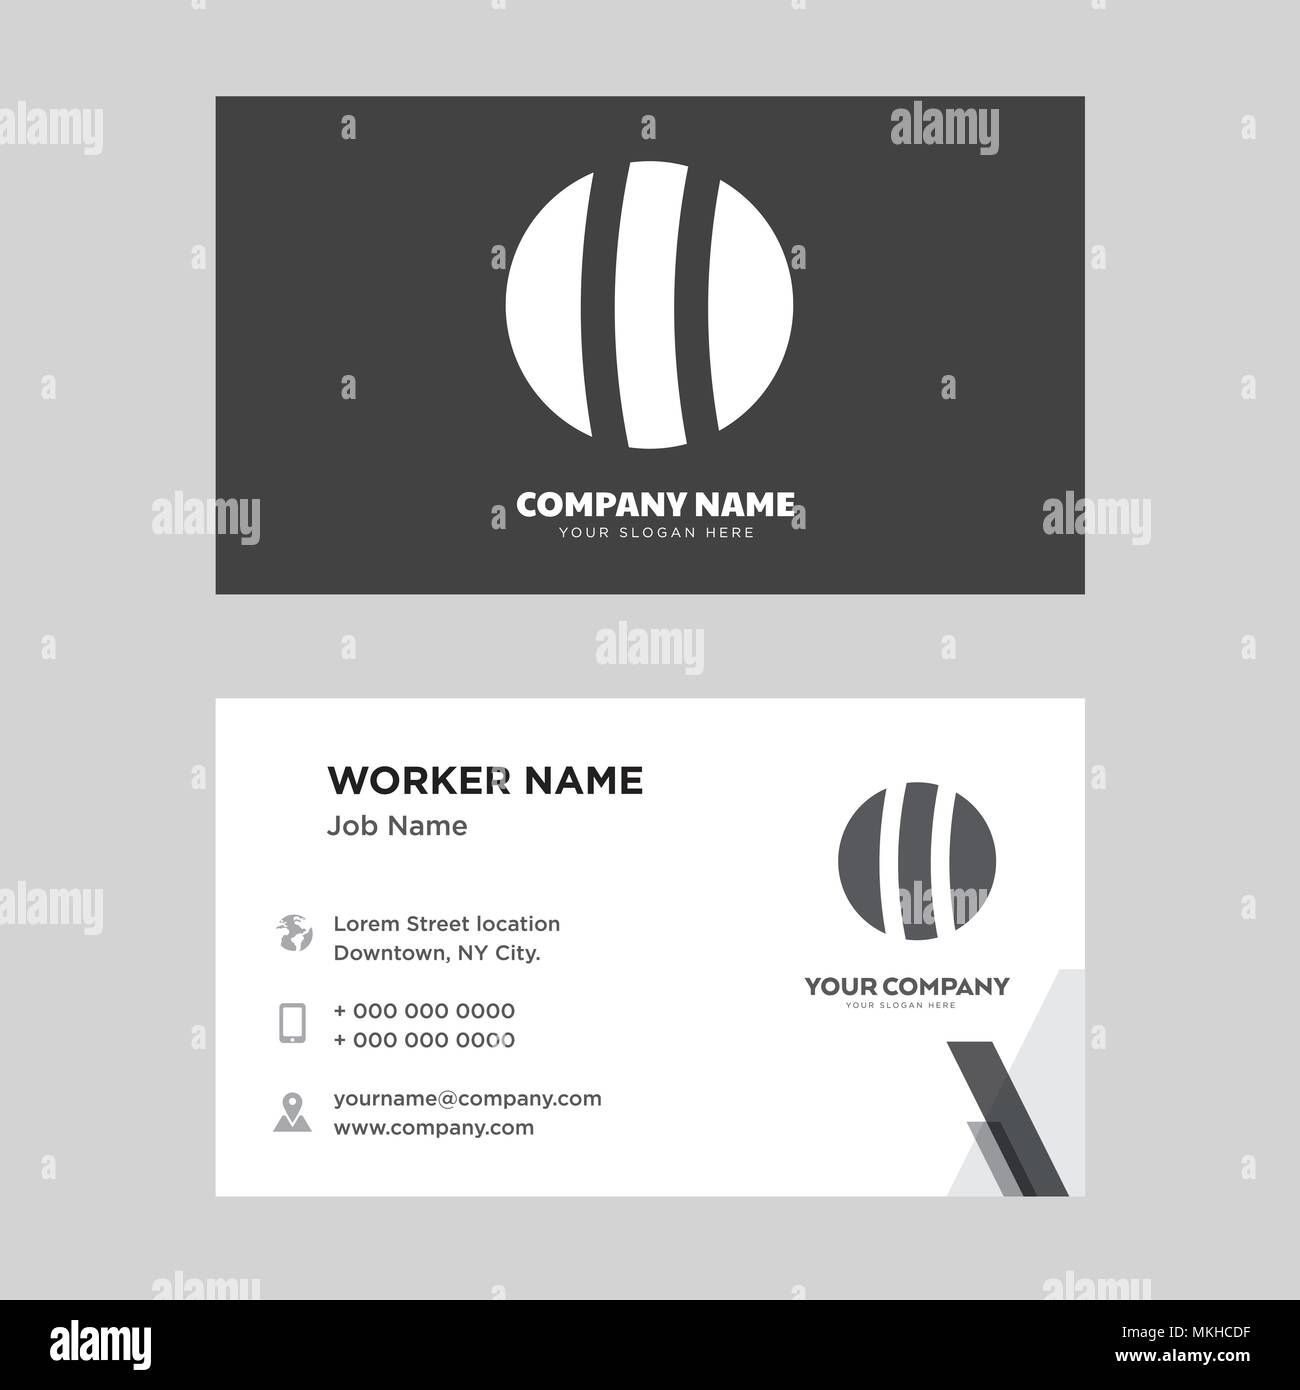 beach ball business card design template visiting for your company